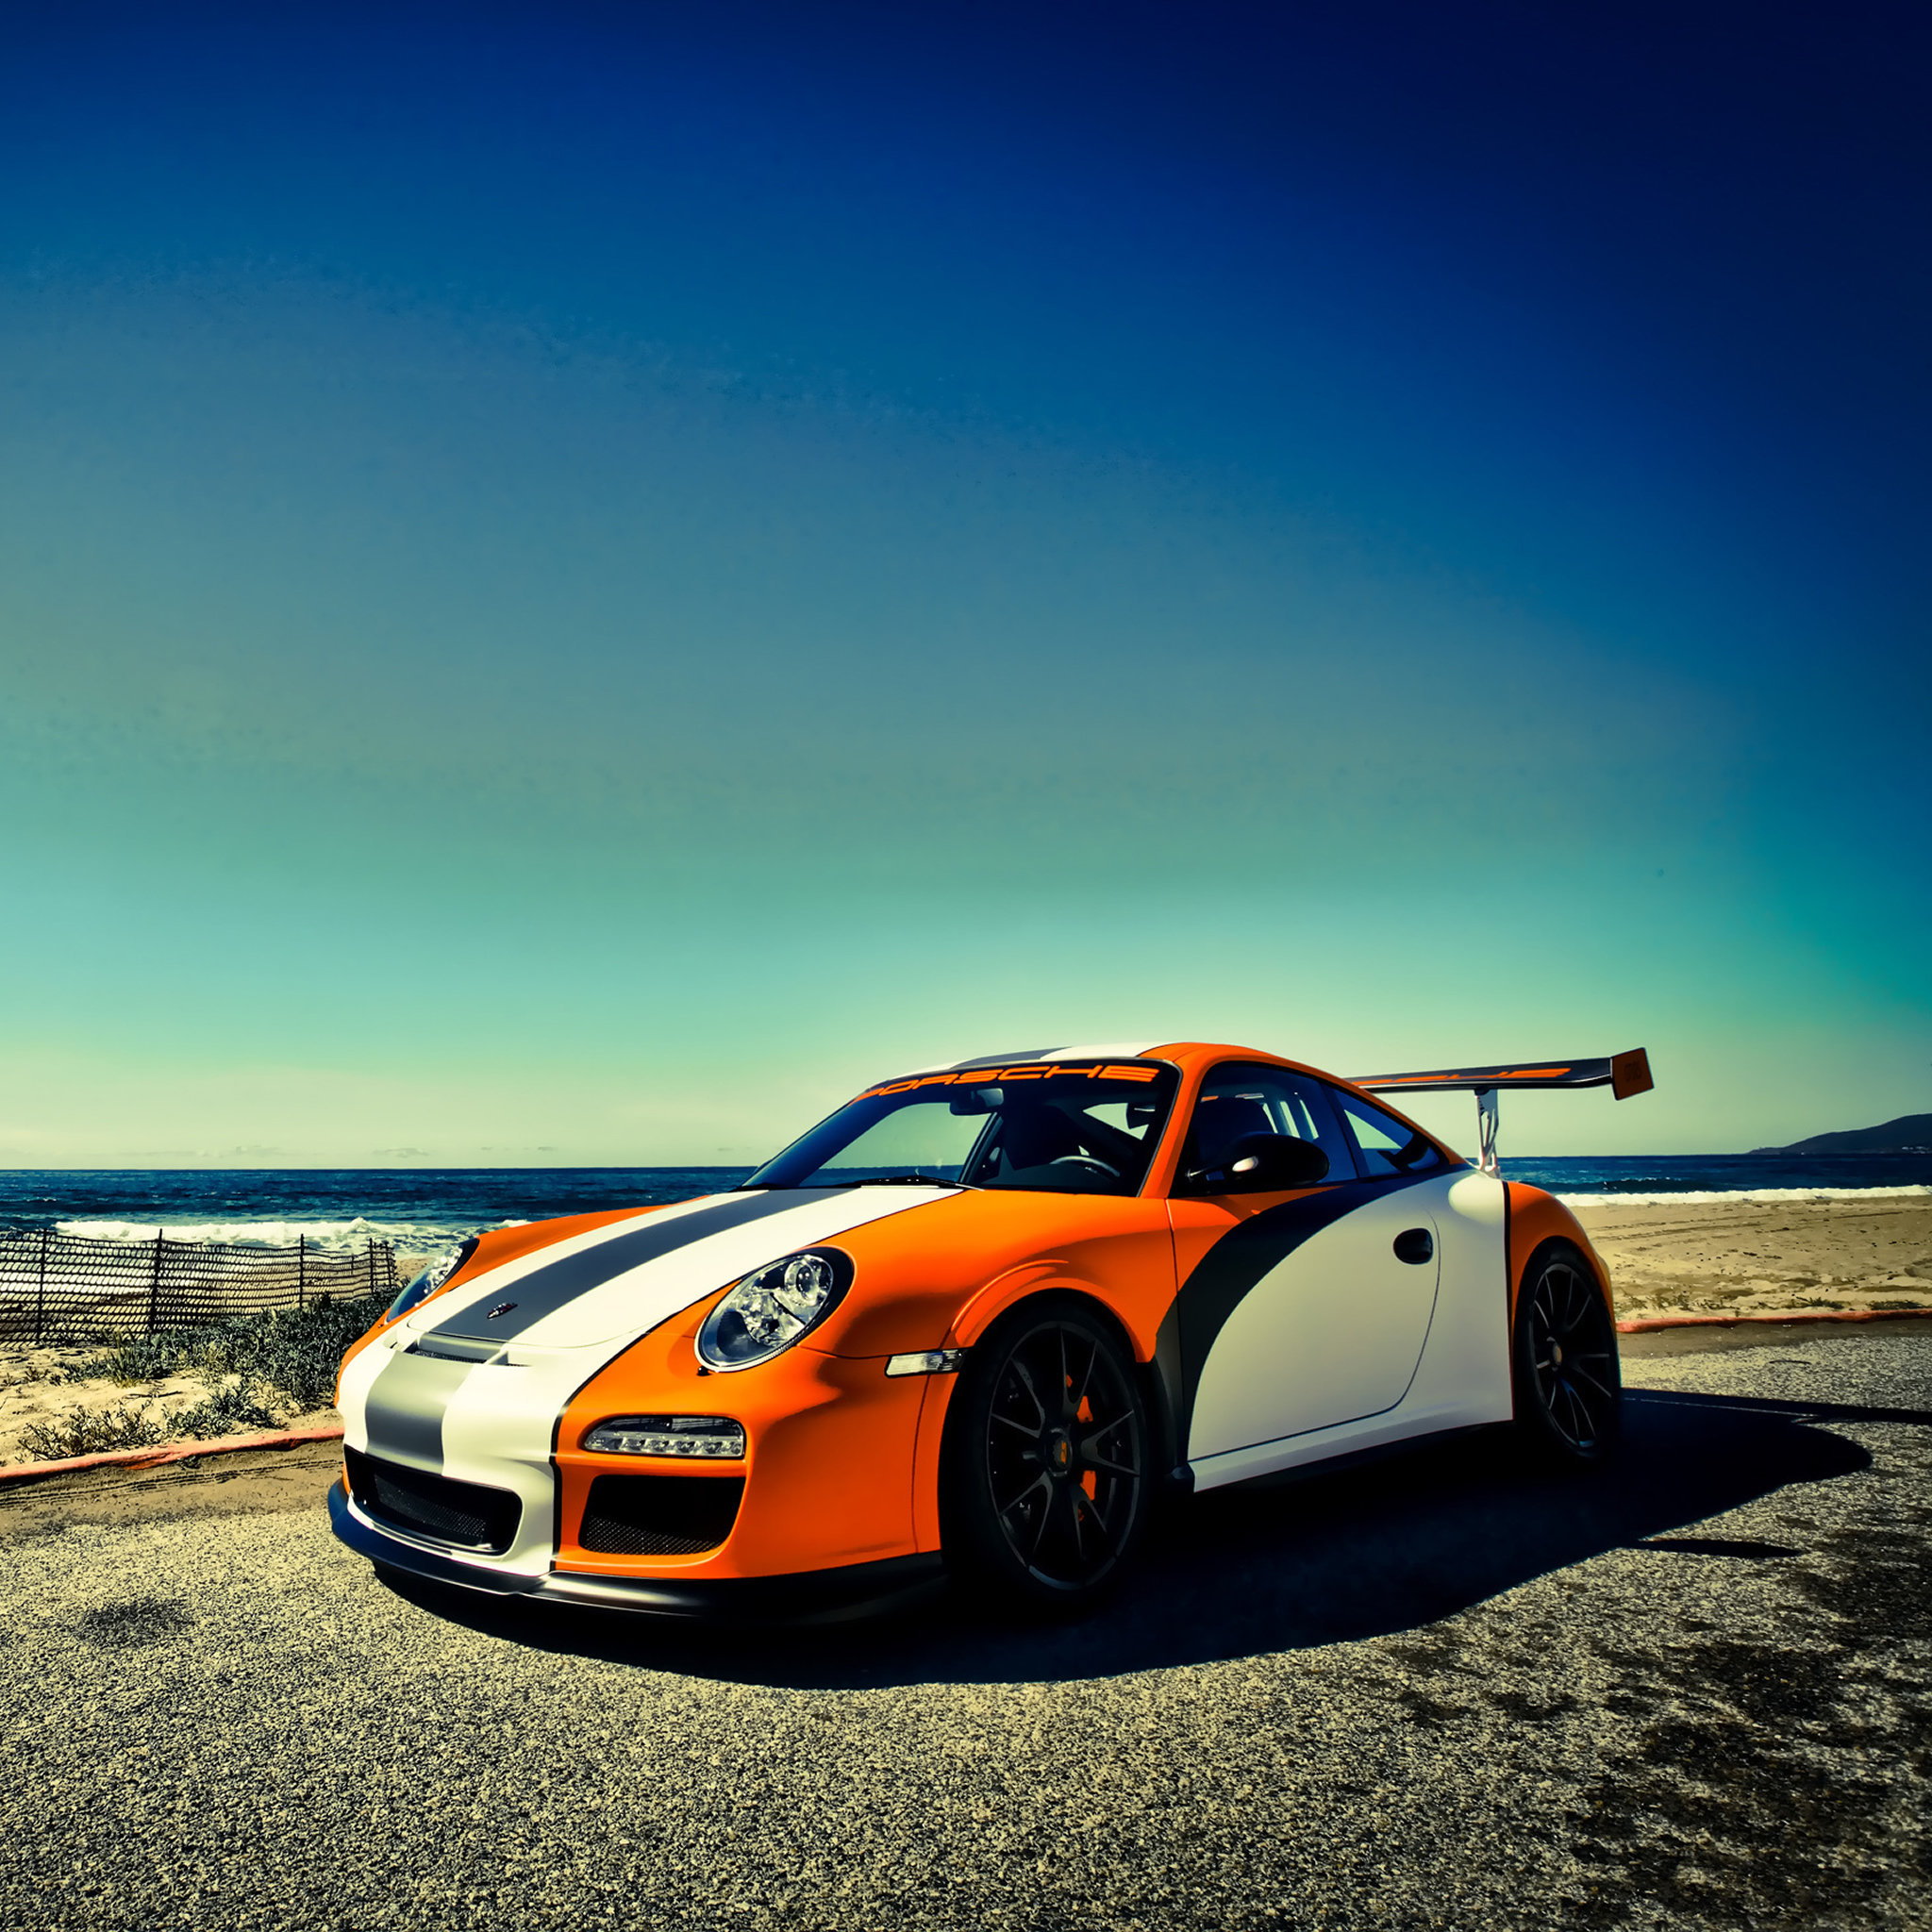 Porsche 3Wallpapers iPad Retina Porsche   iPad Retina